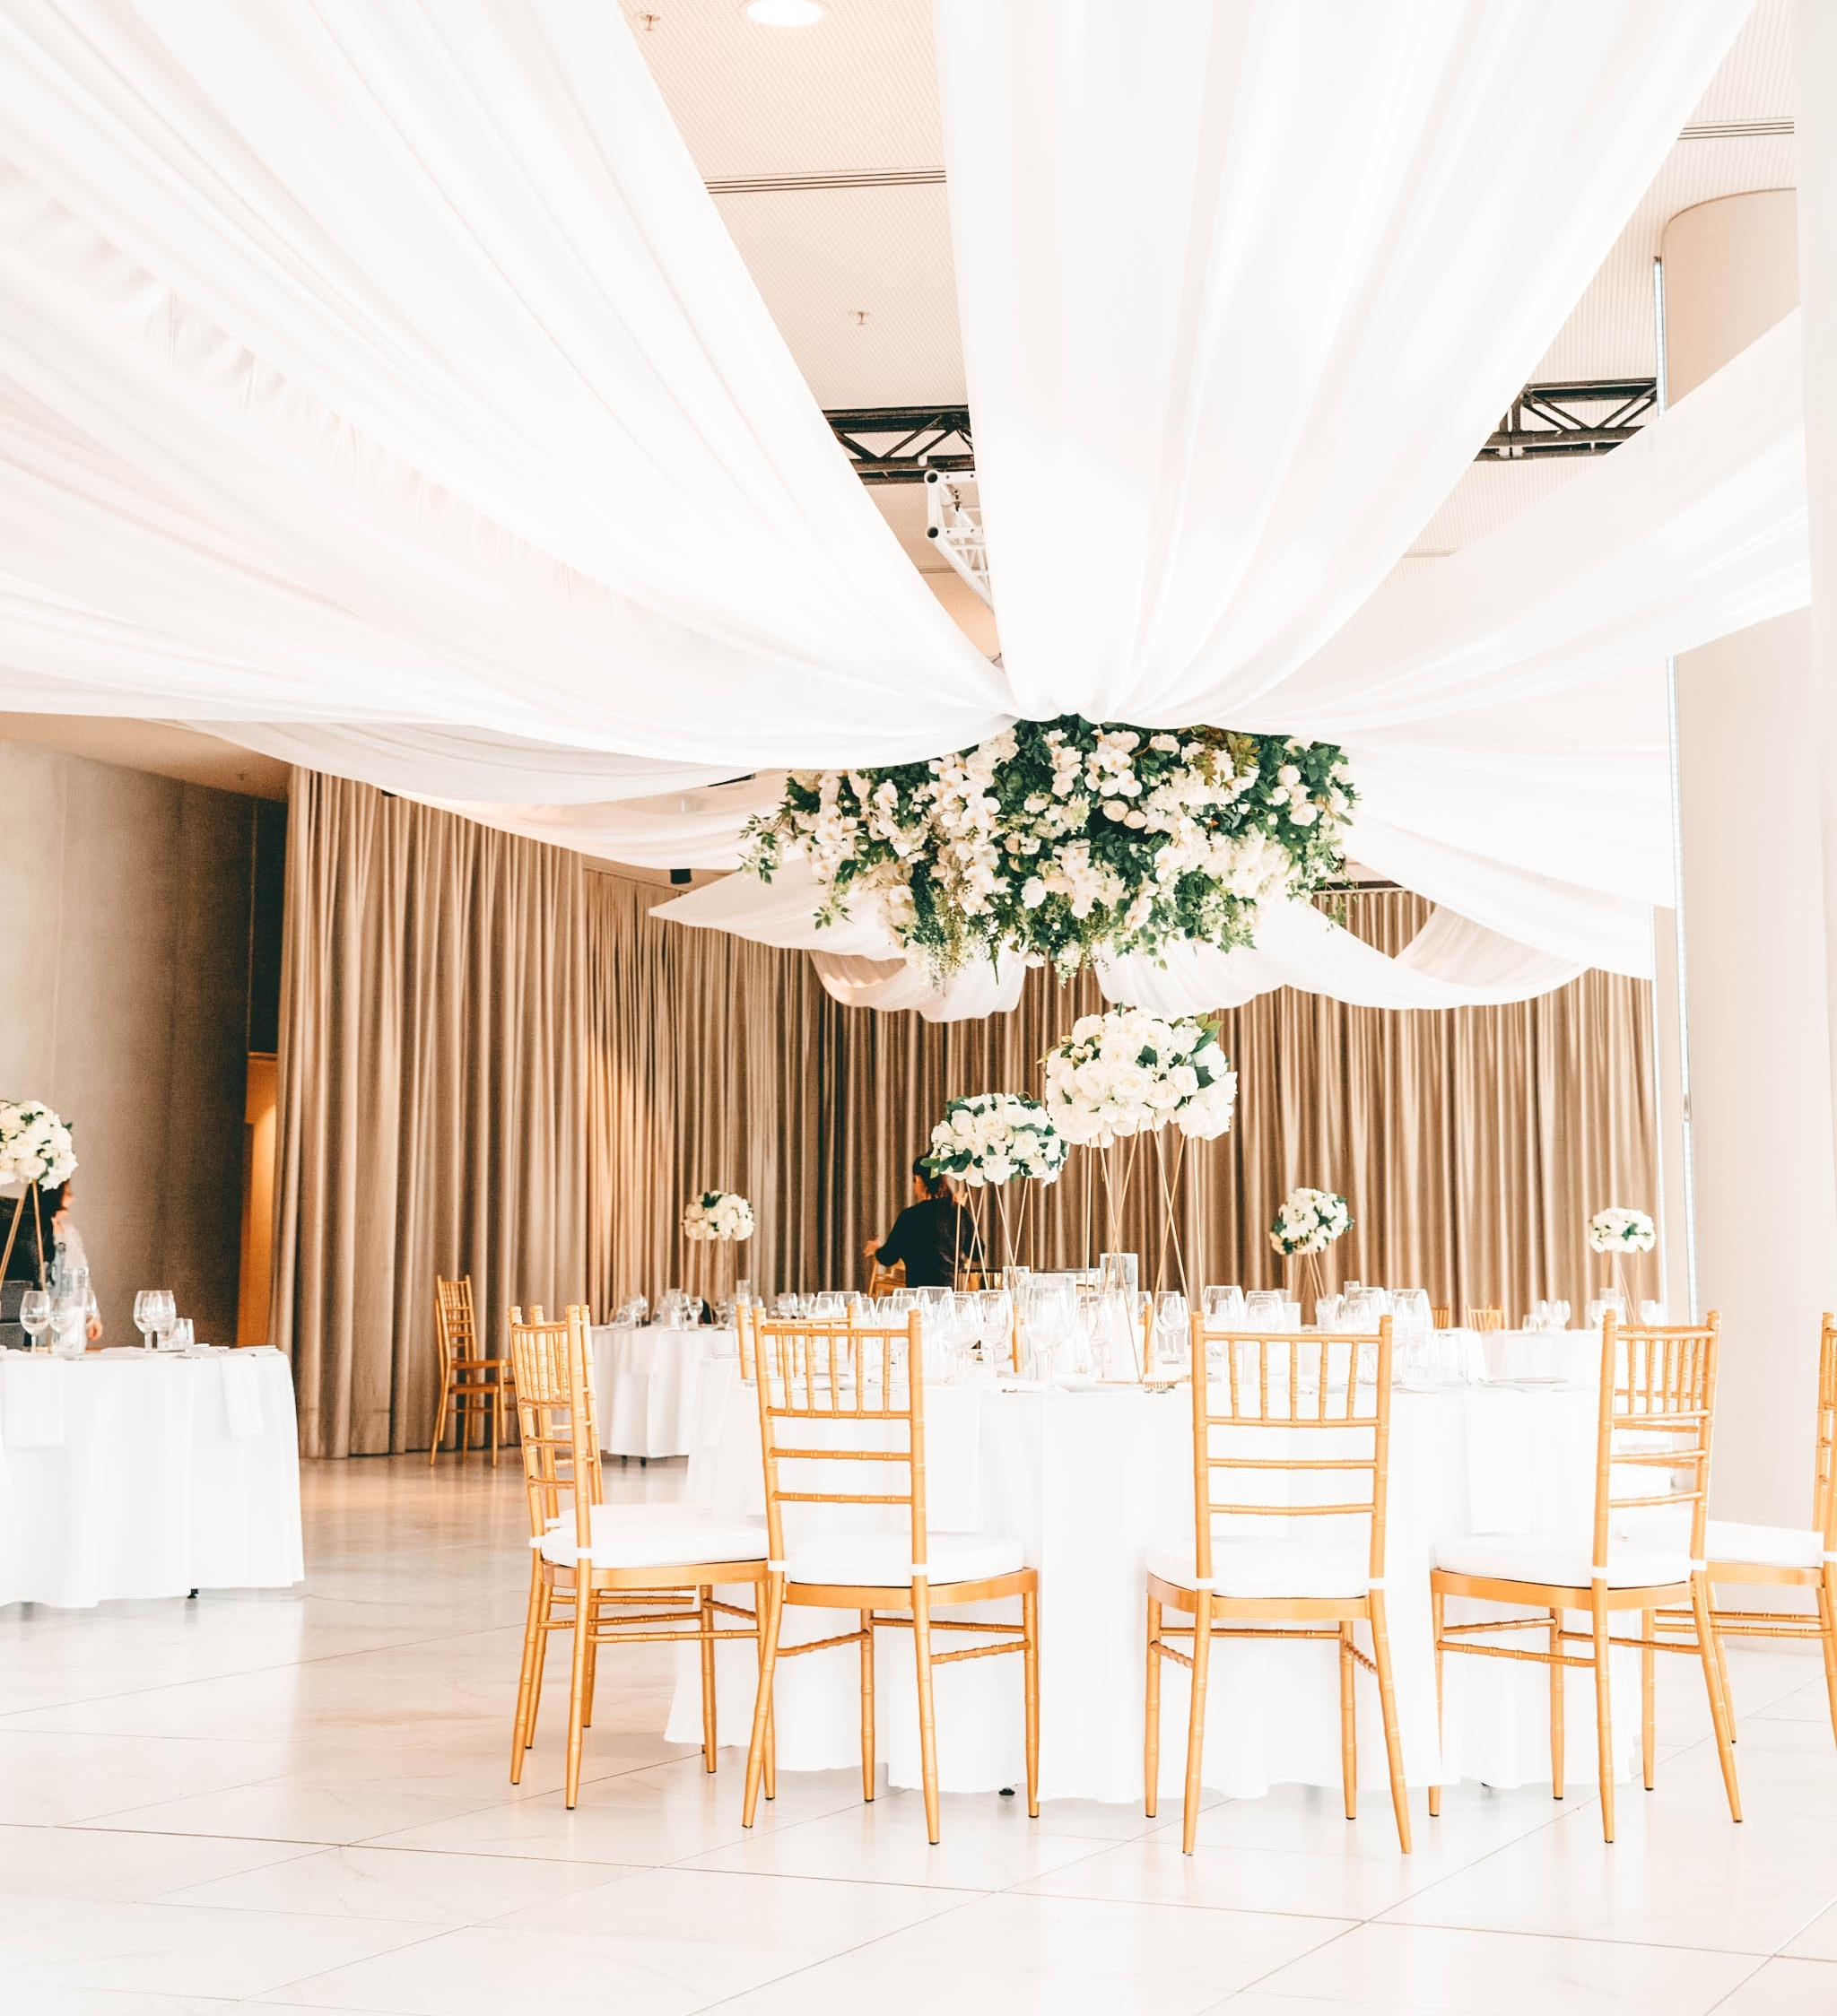 melbourne bridal and honeymoon expo 2019